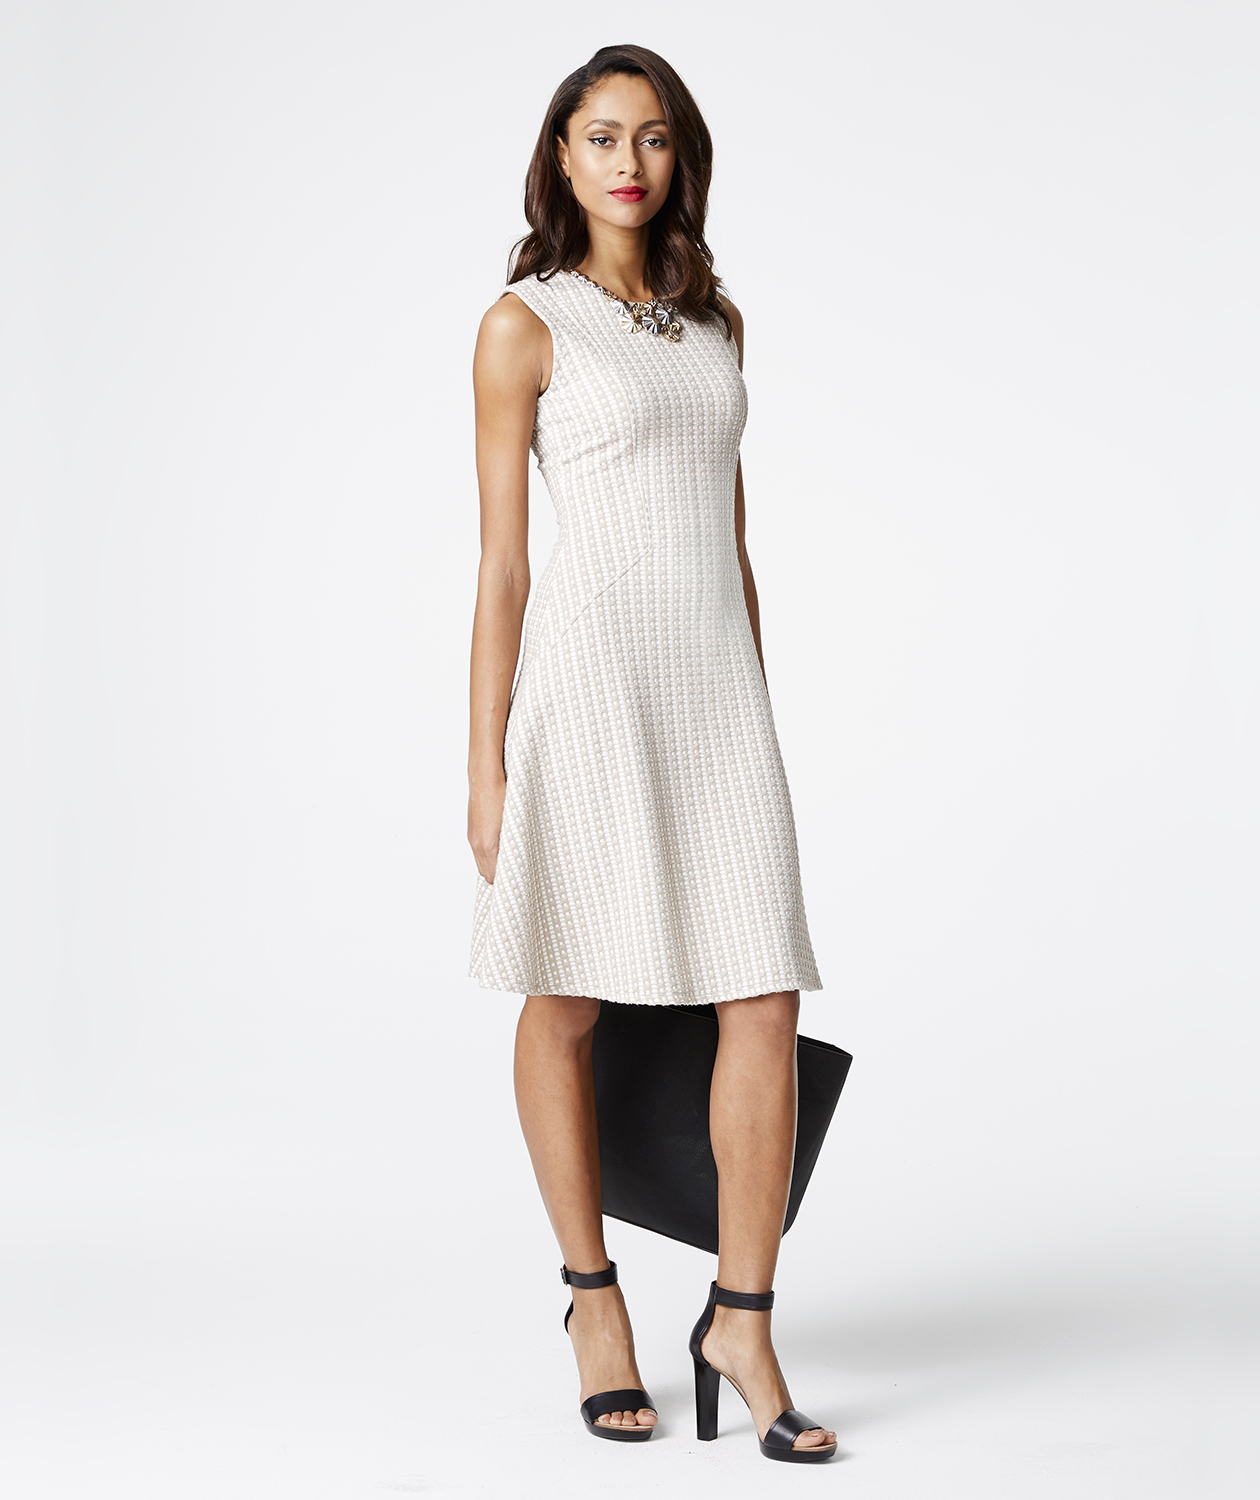 Textured Calvin Klein Dress